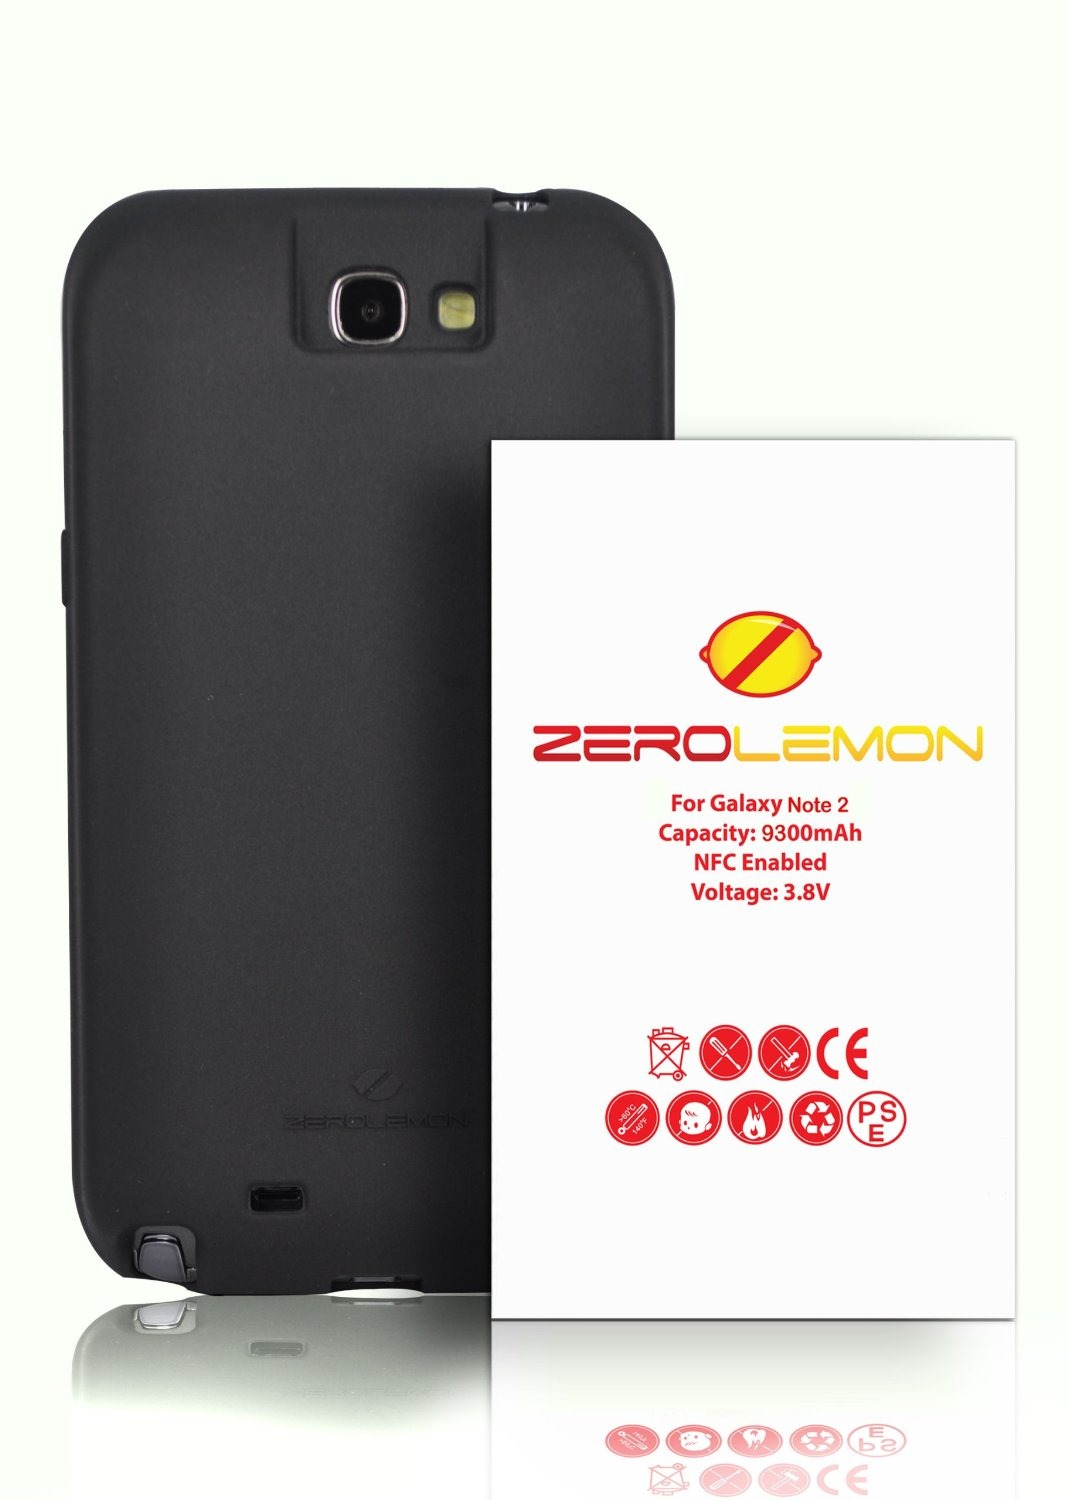 check out 978f4 3e88d Deal Alert] ZeroLemon's Massive 9300mAh Galaxy Note II Extended ...